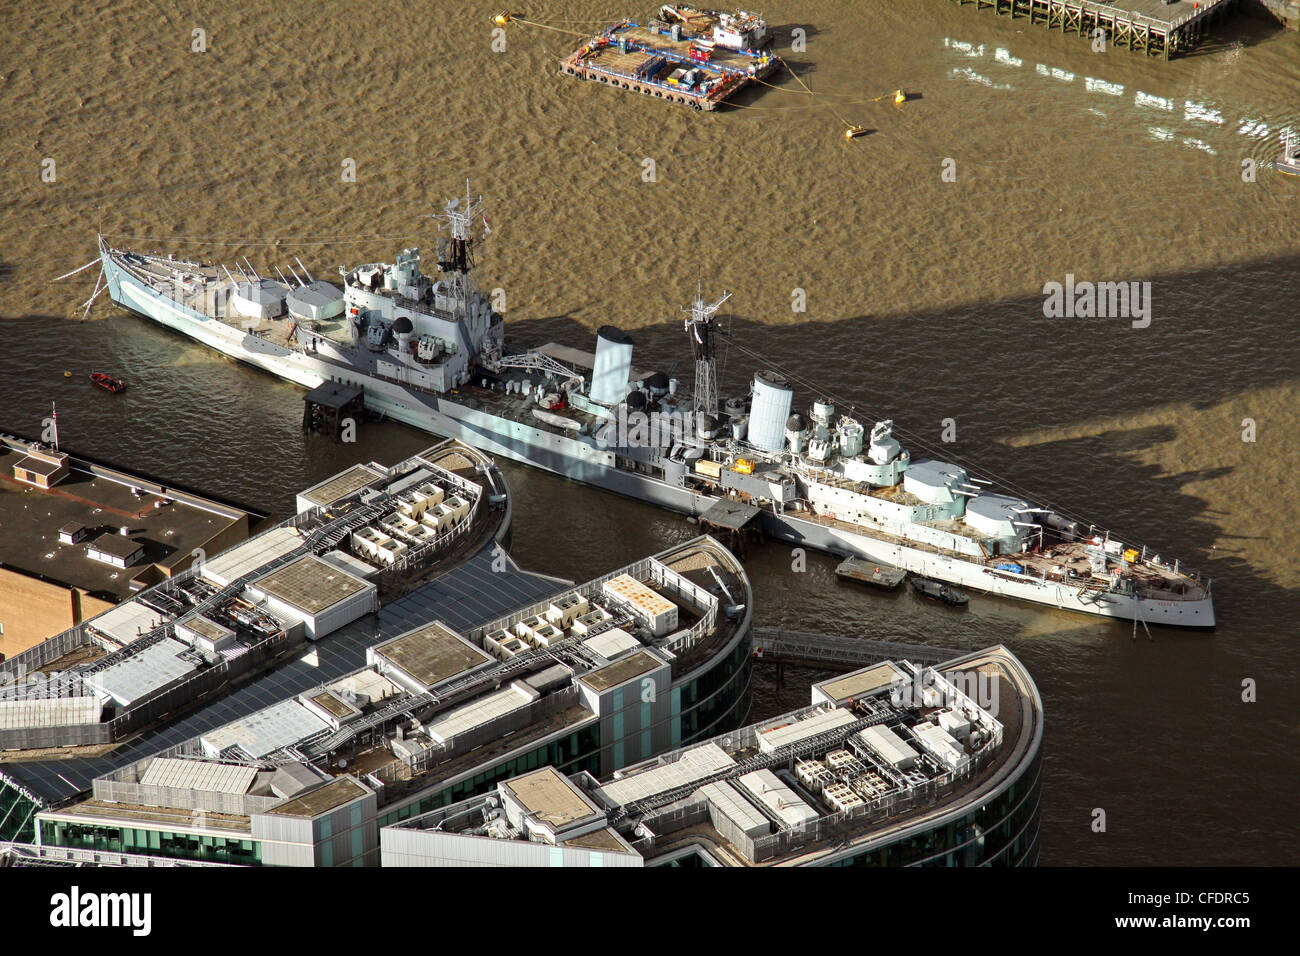 Aerial view of HMS Belfast in The Thames, London - Stock Image